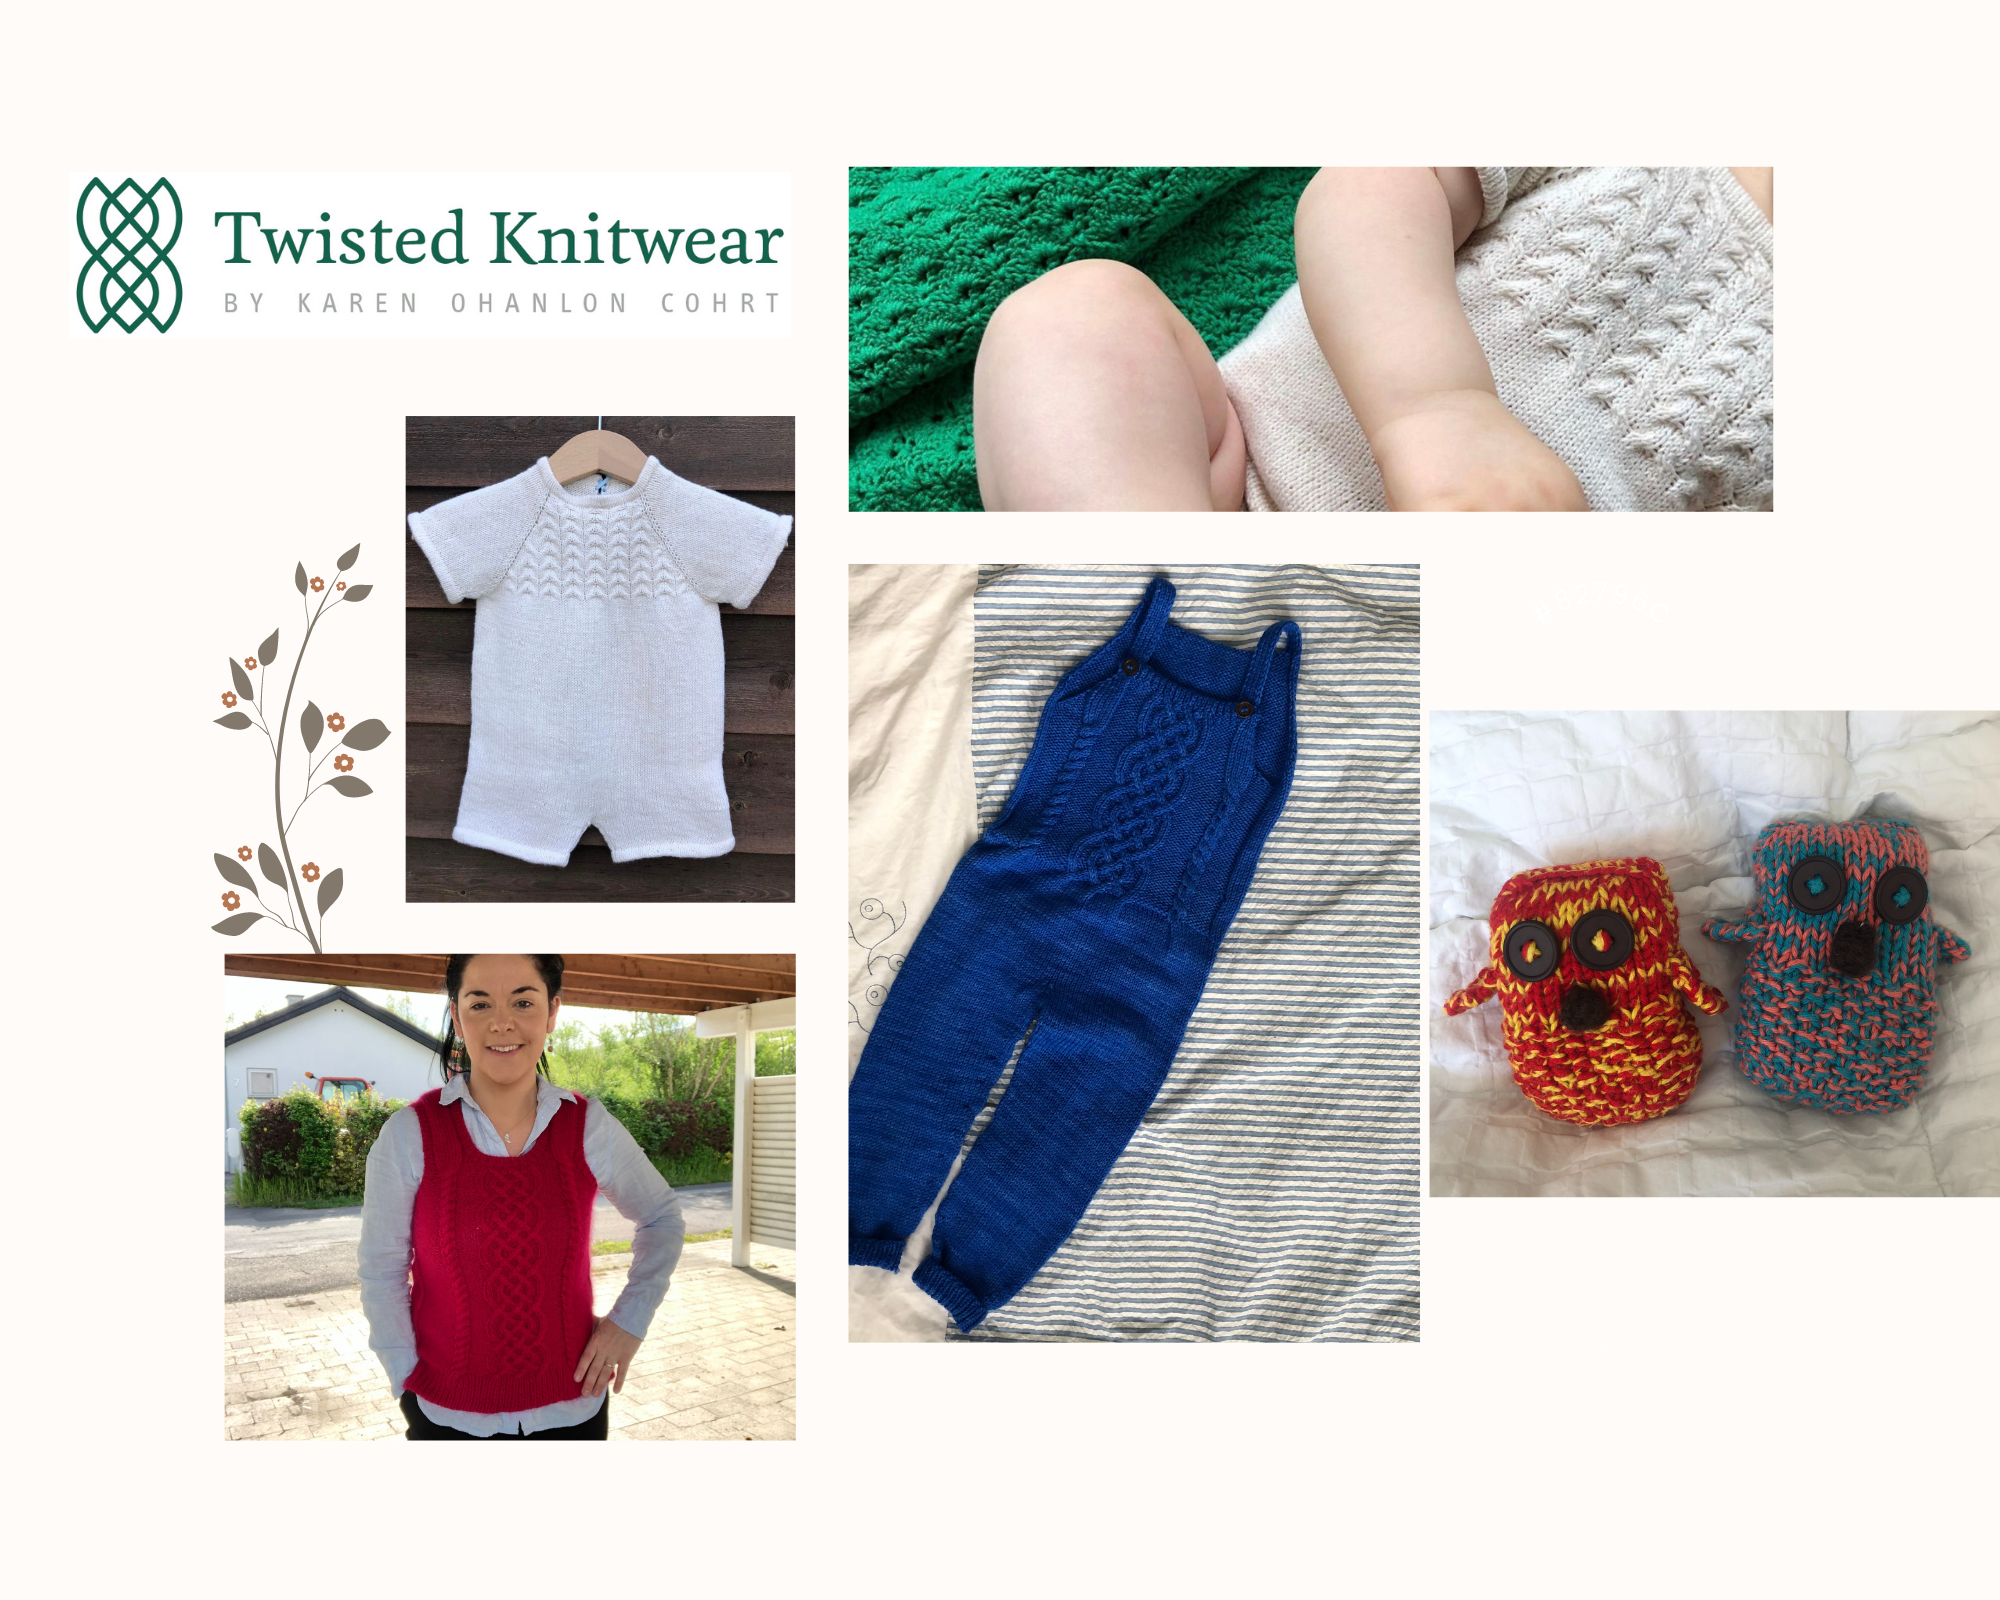 Modern knitwear with inspiration from Ireland Twisted Knitwear is the journey of Karen OHanlon Cohrt an Irish woman 2png